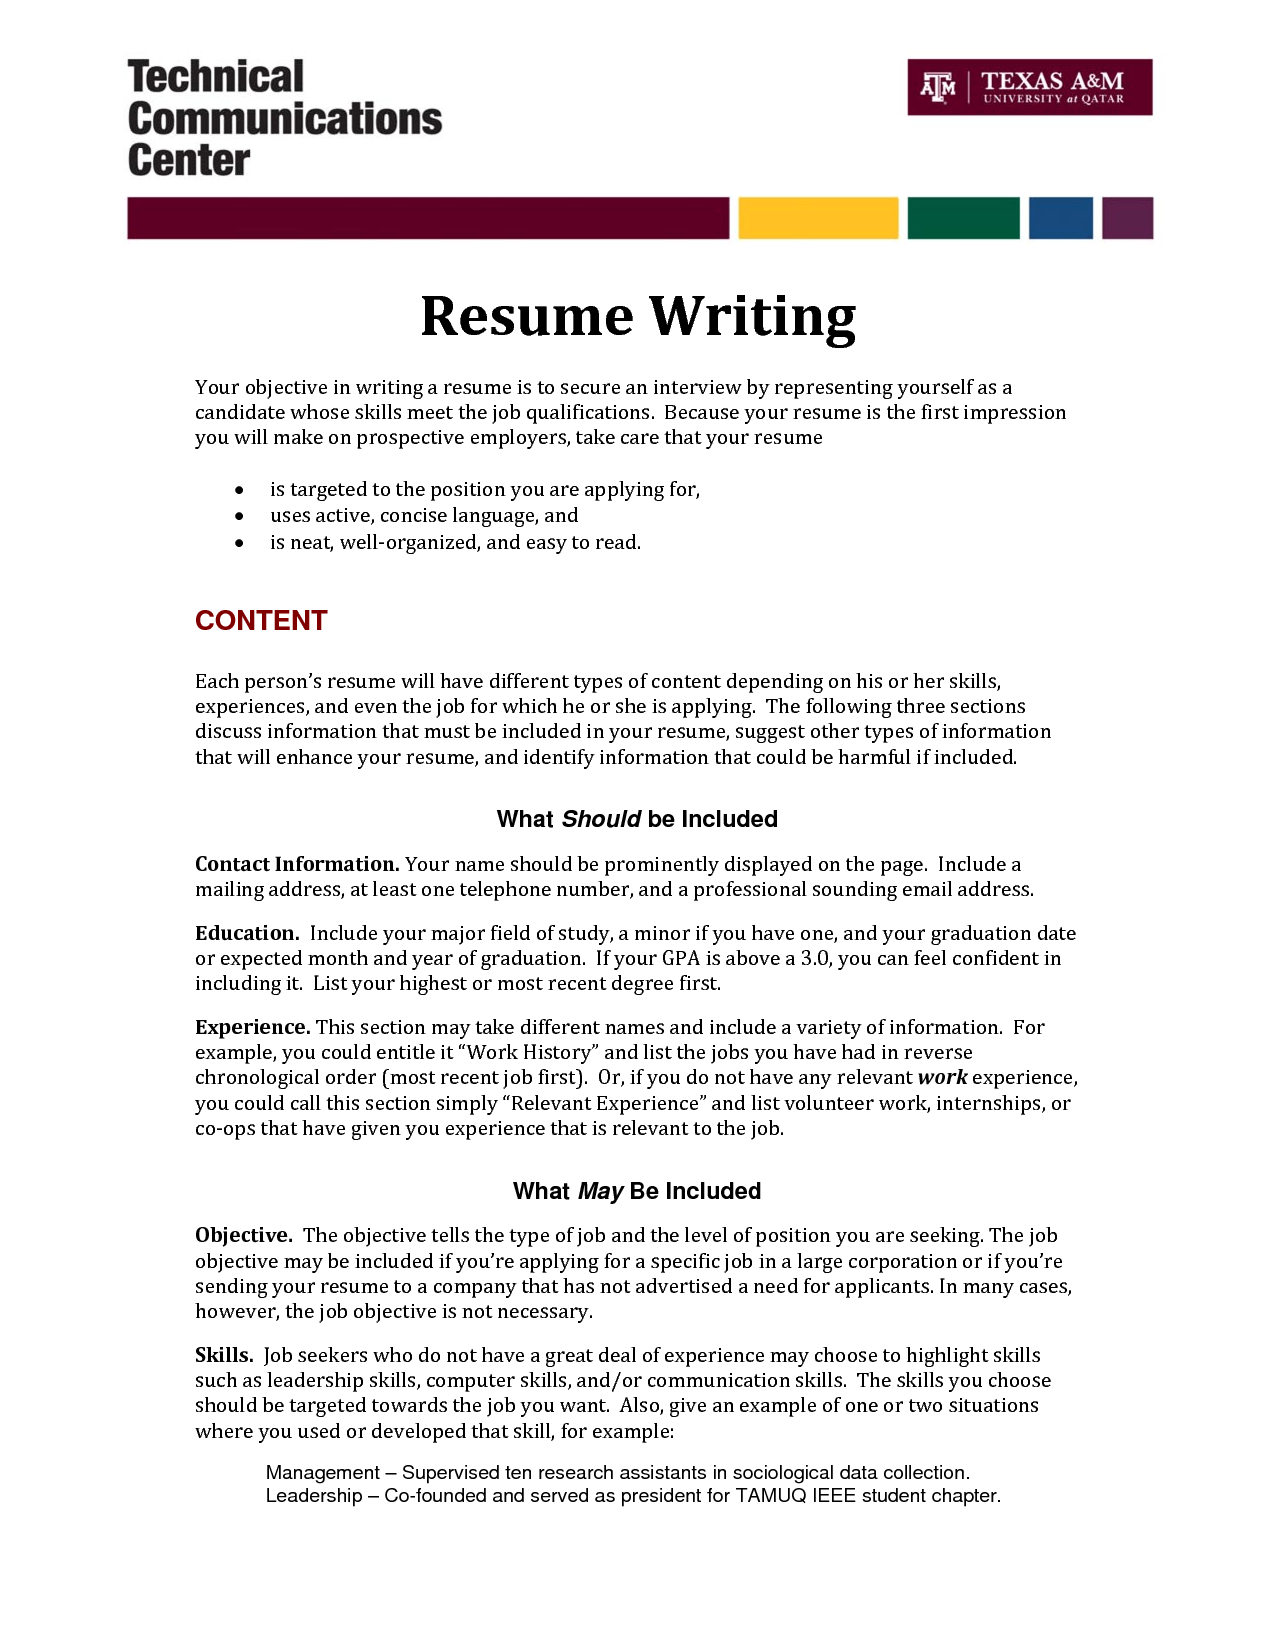 How To Write A Resume? | Fotolip.com Rich image and wallpaper